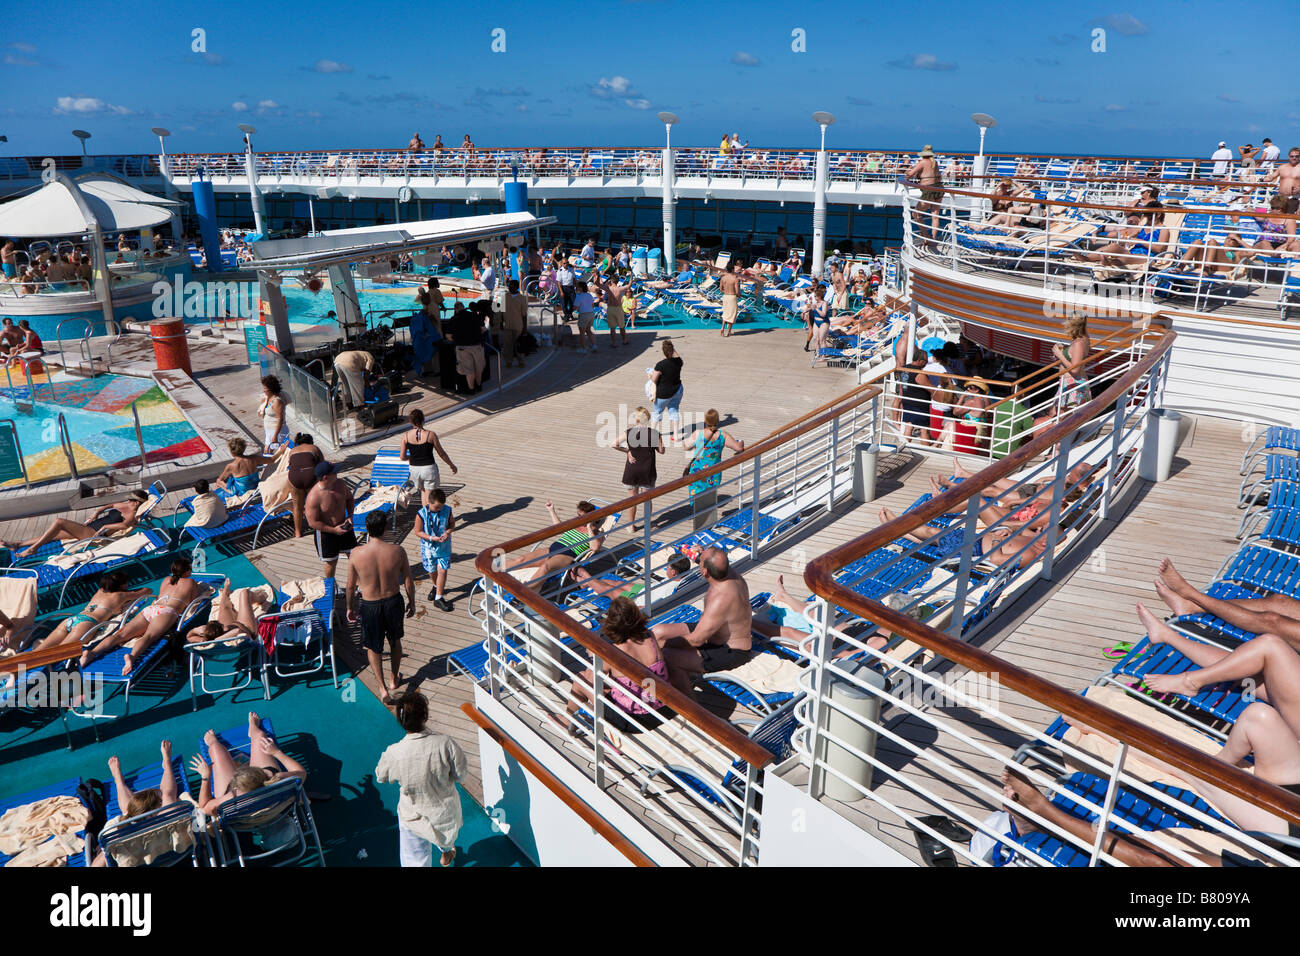 Cruise ship passengers lounging on the sun deck around the pool on Royal Caribbean Navigator of the Seas - Stock Image